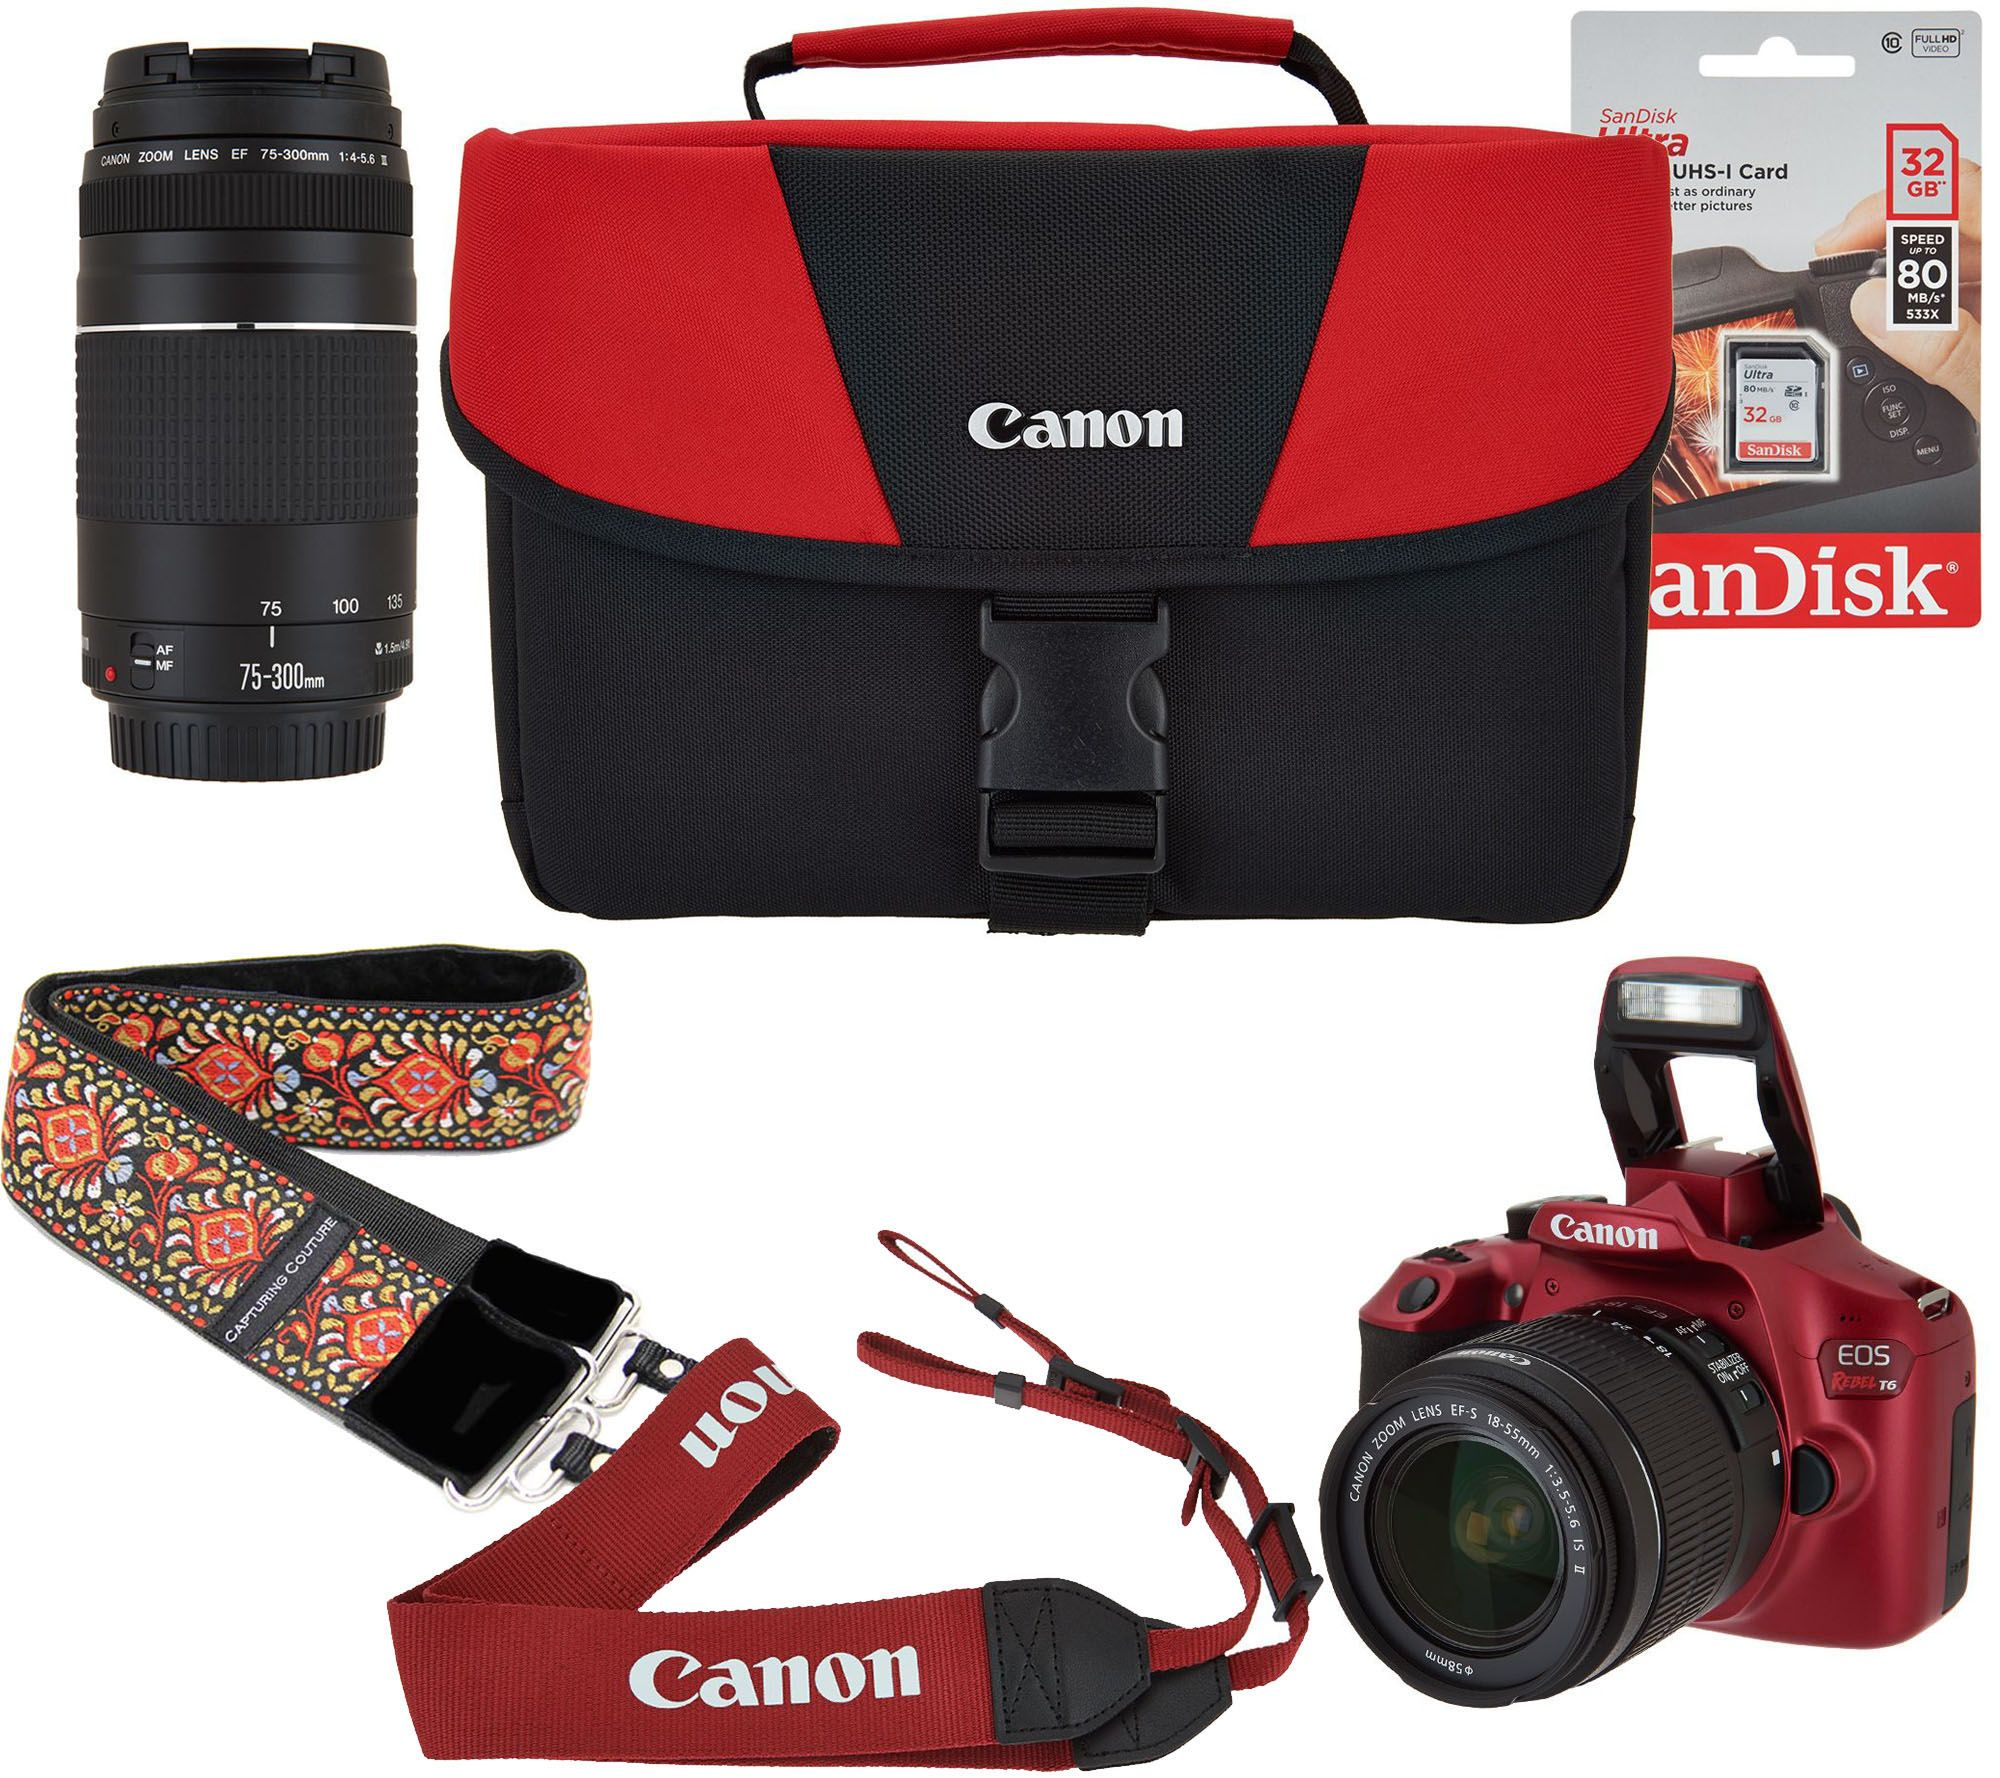 Canon Rebel T6 18MP DSLR Wi-Fi Camera with 18-55, 75-300mm Lens ...